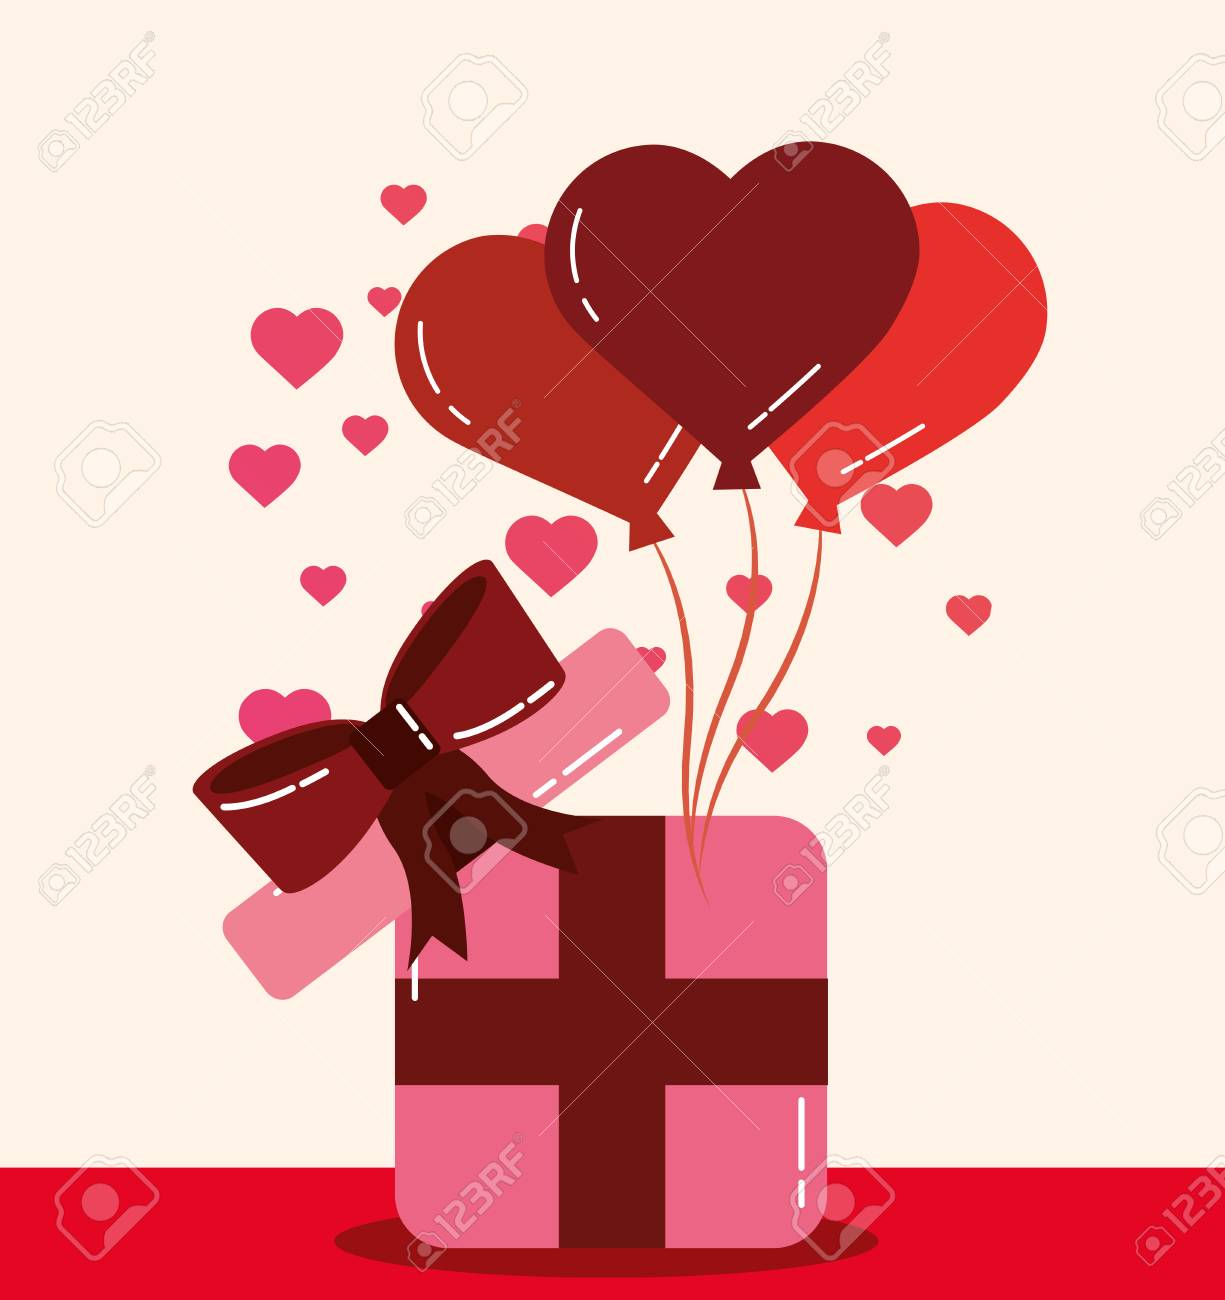 Valentines Day Love Hearts Balloons Gift Box Surprise Romantic